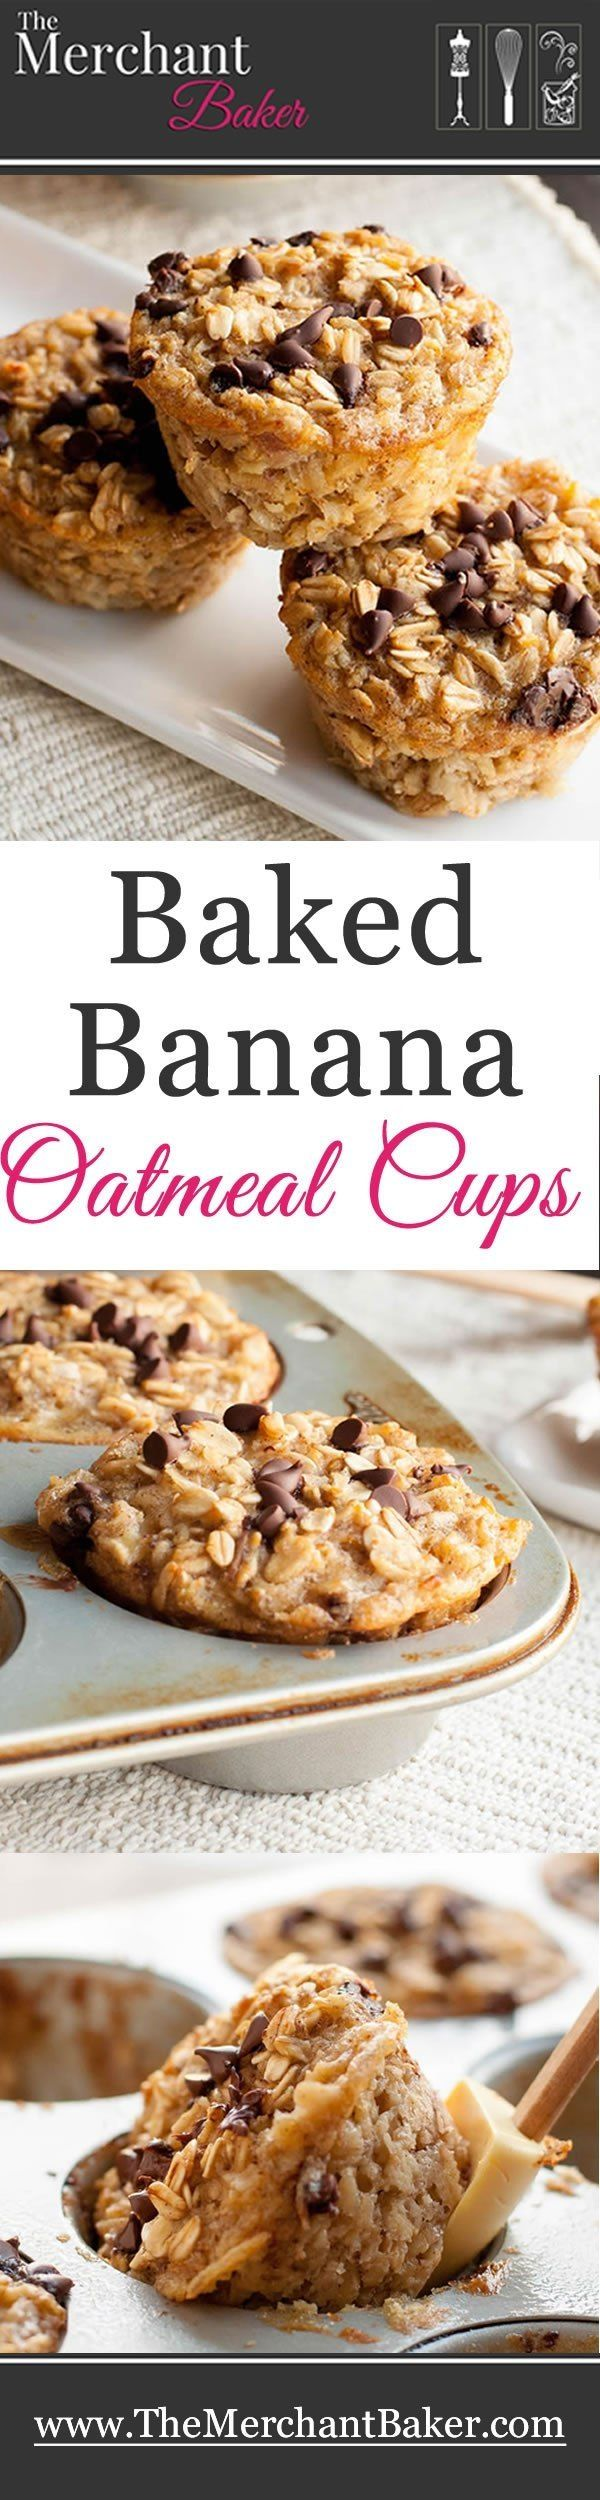 Baked Banana Oatmeal Cups. A hearty and healthy oatmeal that you can make ahead. Baked in individual cups so they're an easy grab and go breakfast! by julia